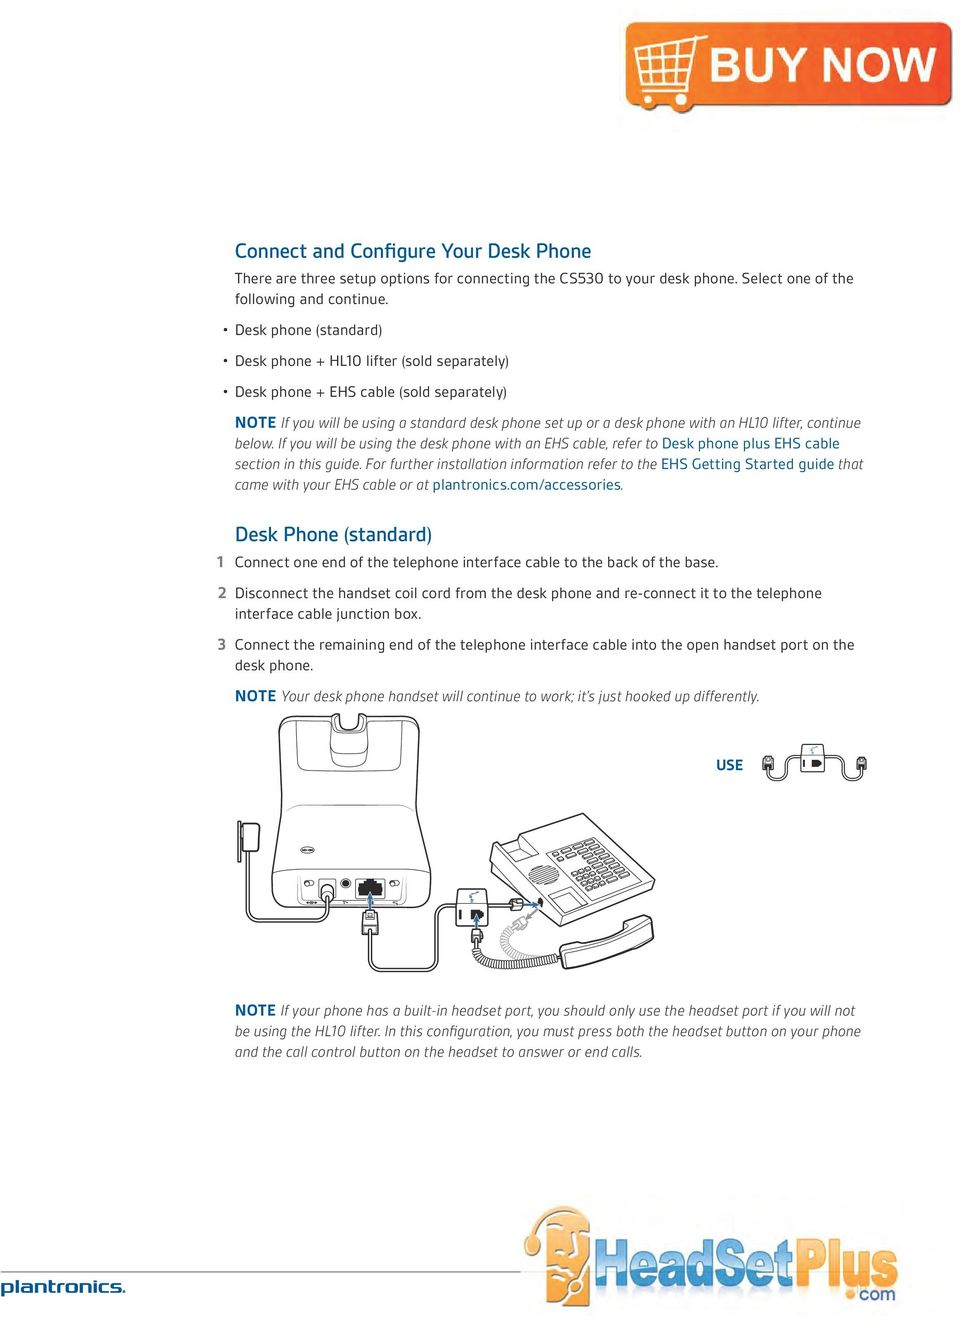 continue below. If you will be using the desk phone with an EHS cable, refer to Desk phone plus EHS cable section in this guide.